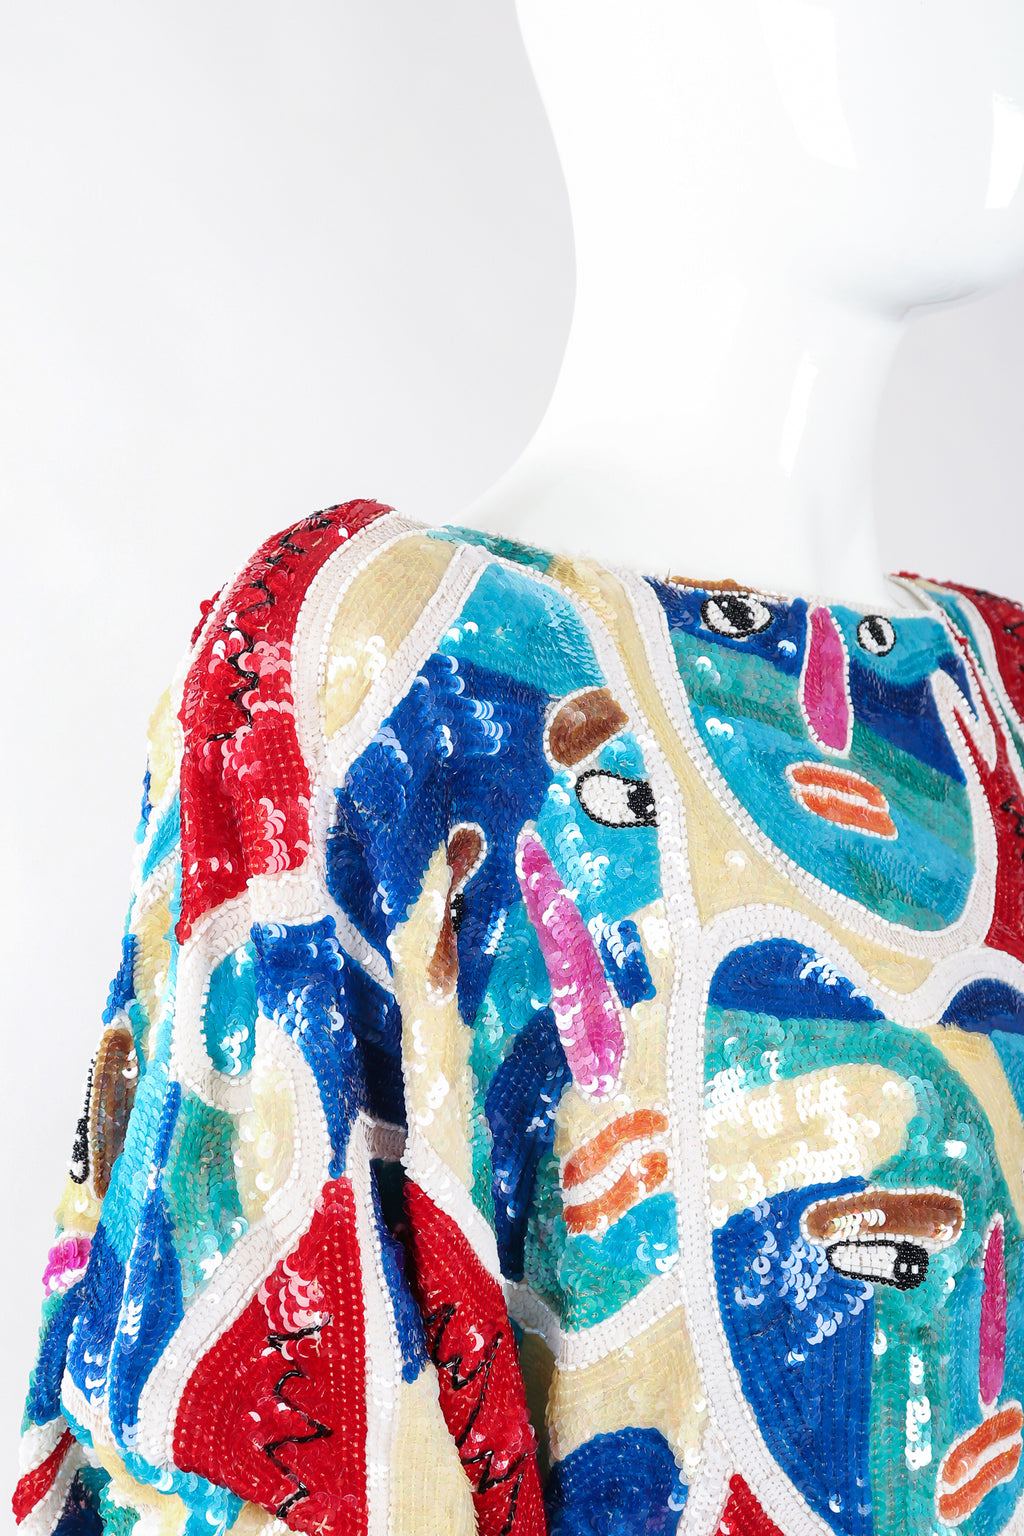 Recess Los Angeles Designer Consignment Vintage Chanson D'Amour Abstract Sequined Faces Dolman Tunic